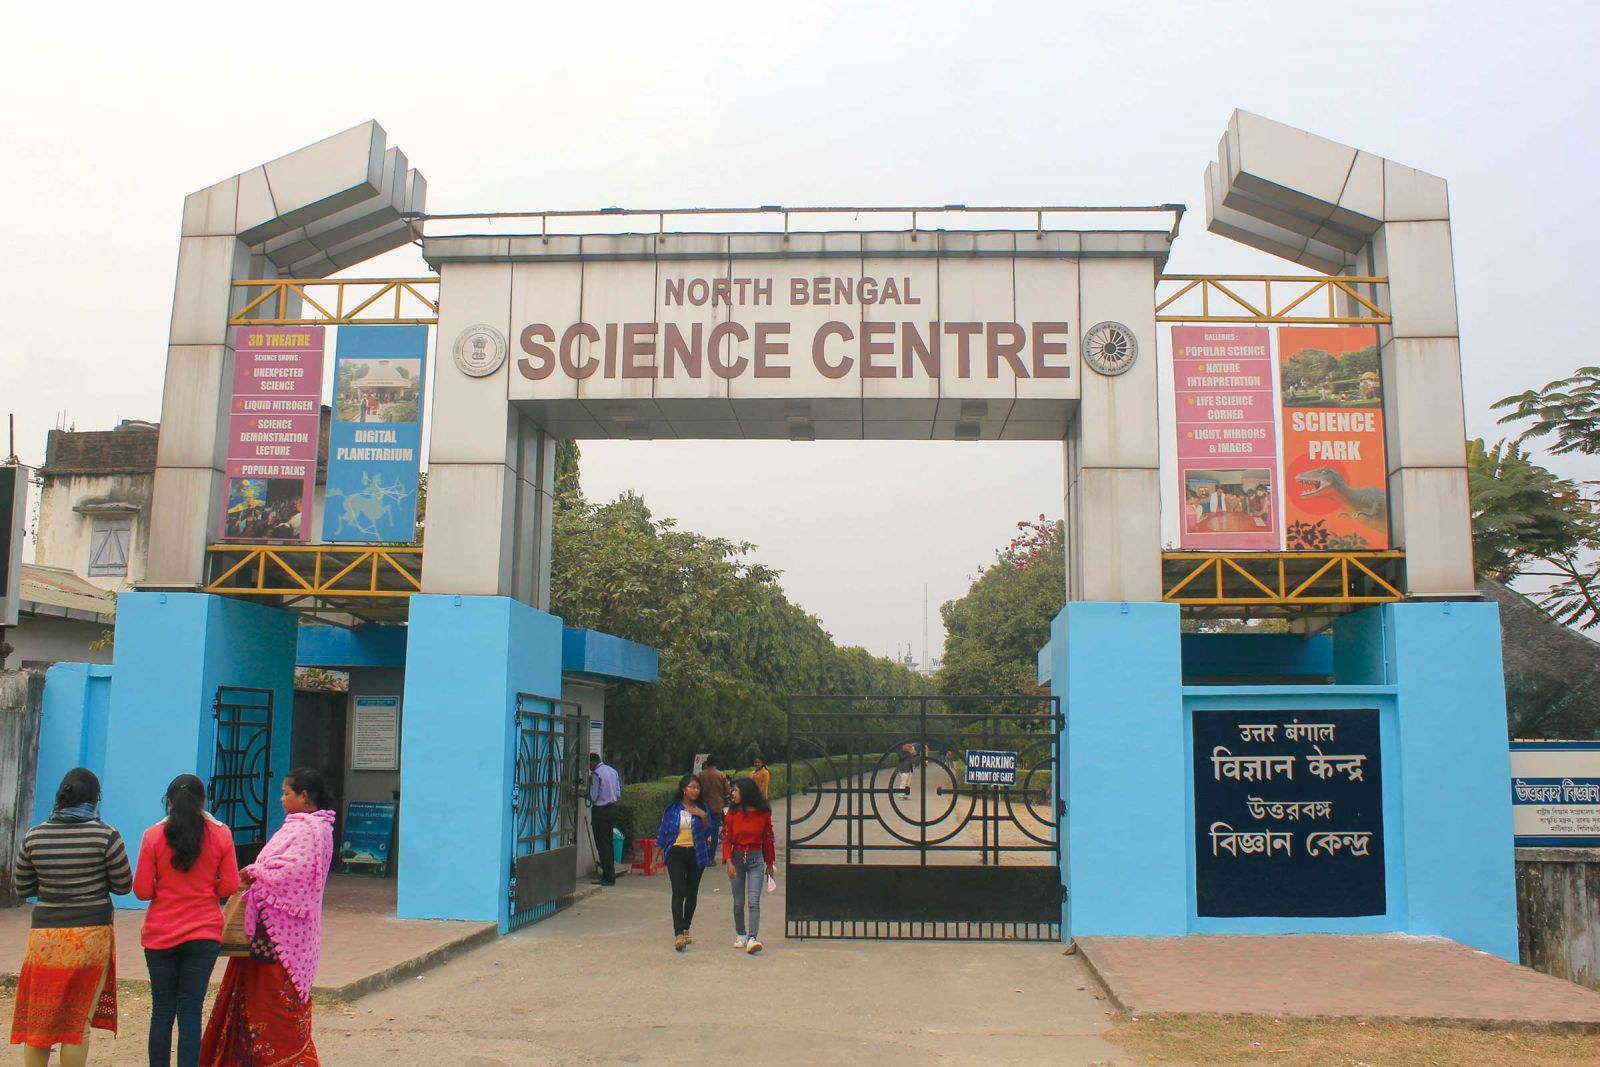 Top Things To Do in Siliguri - Spending a Day at the North Bengal Science Center